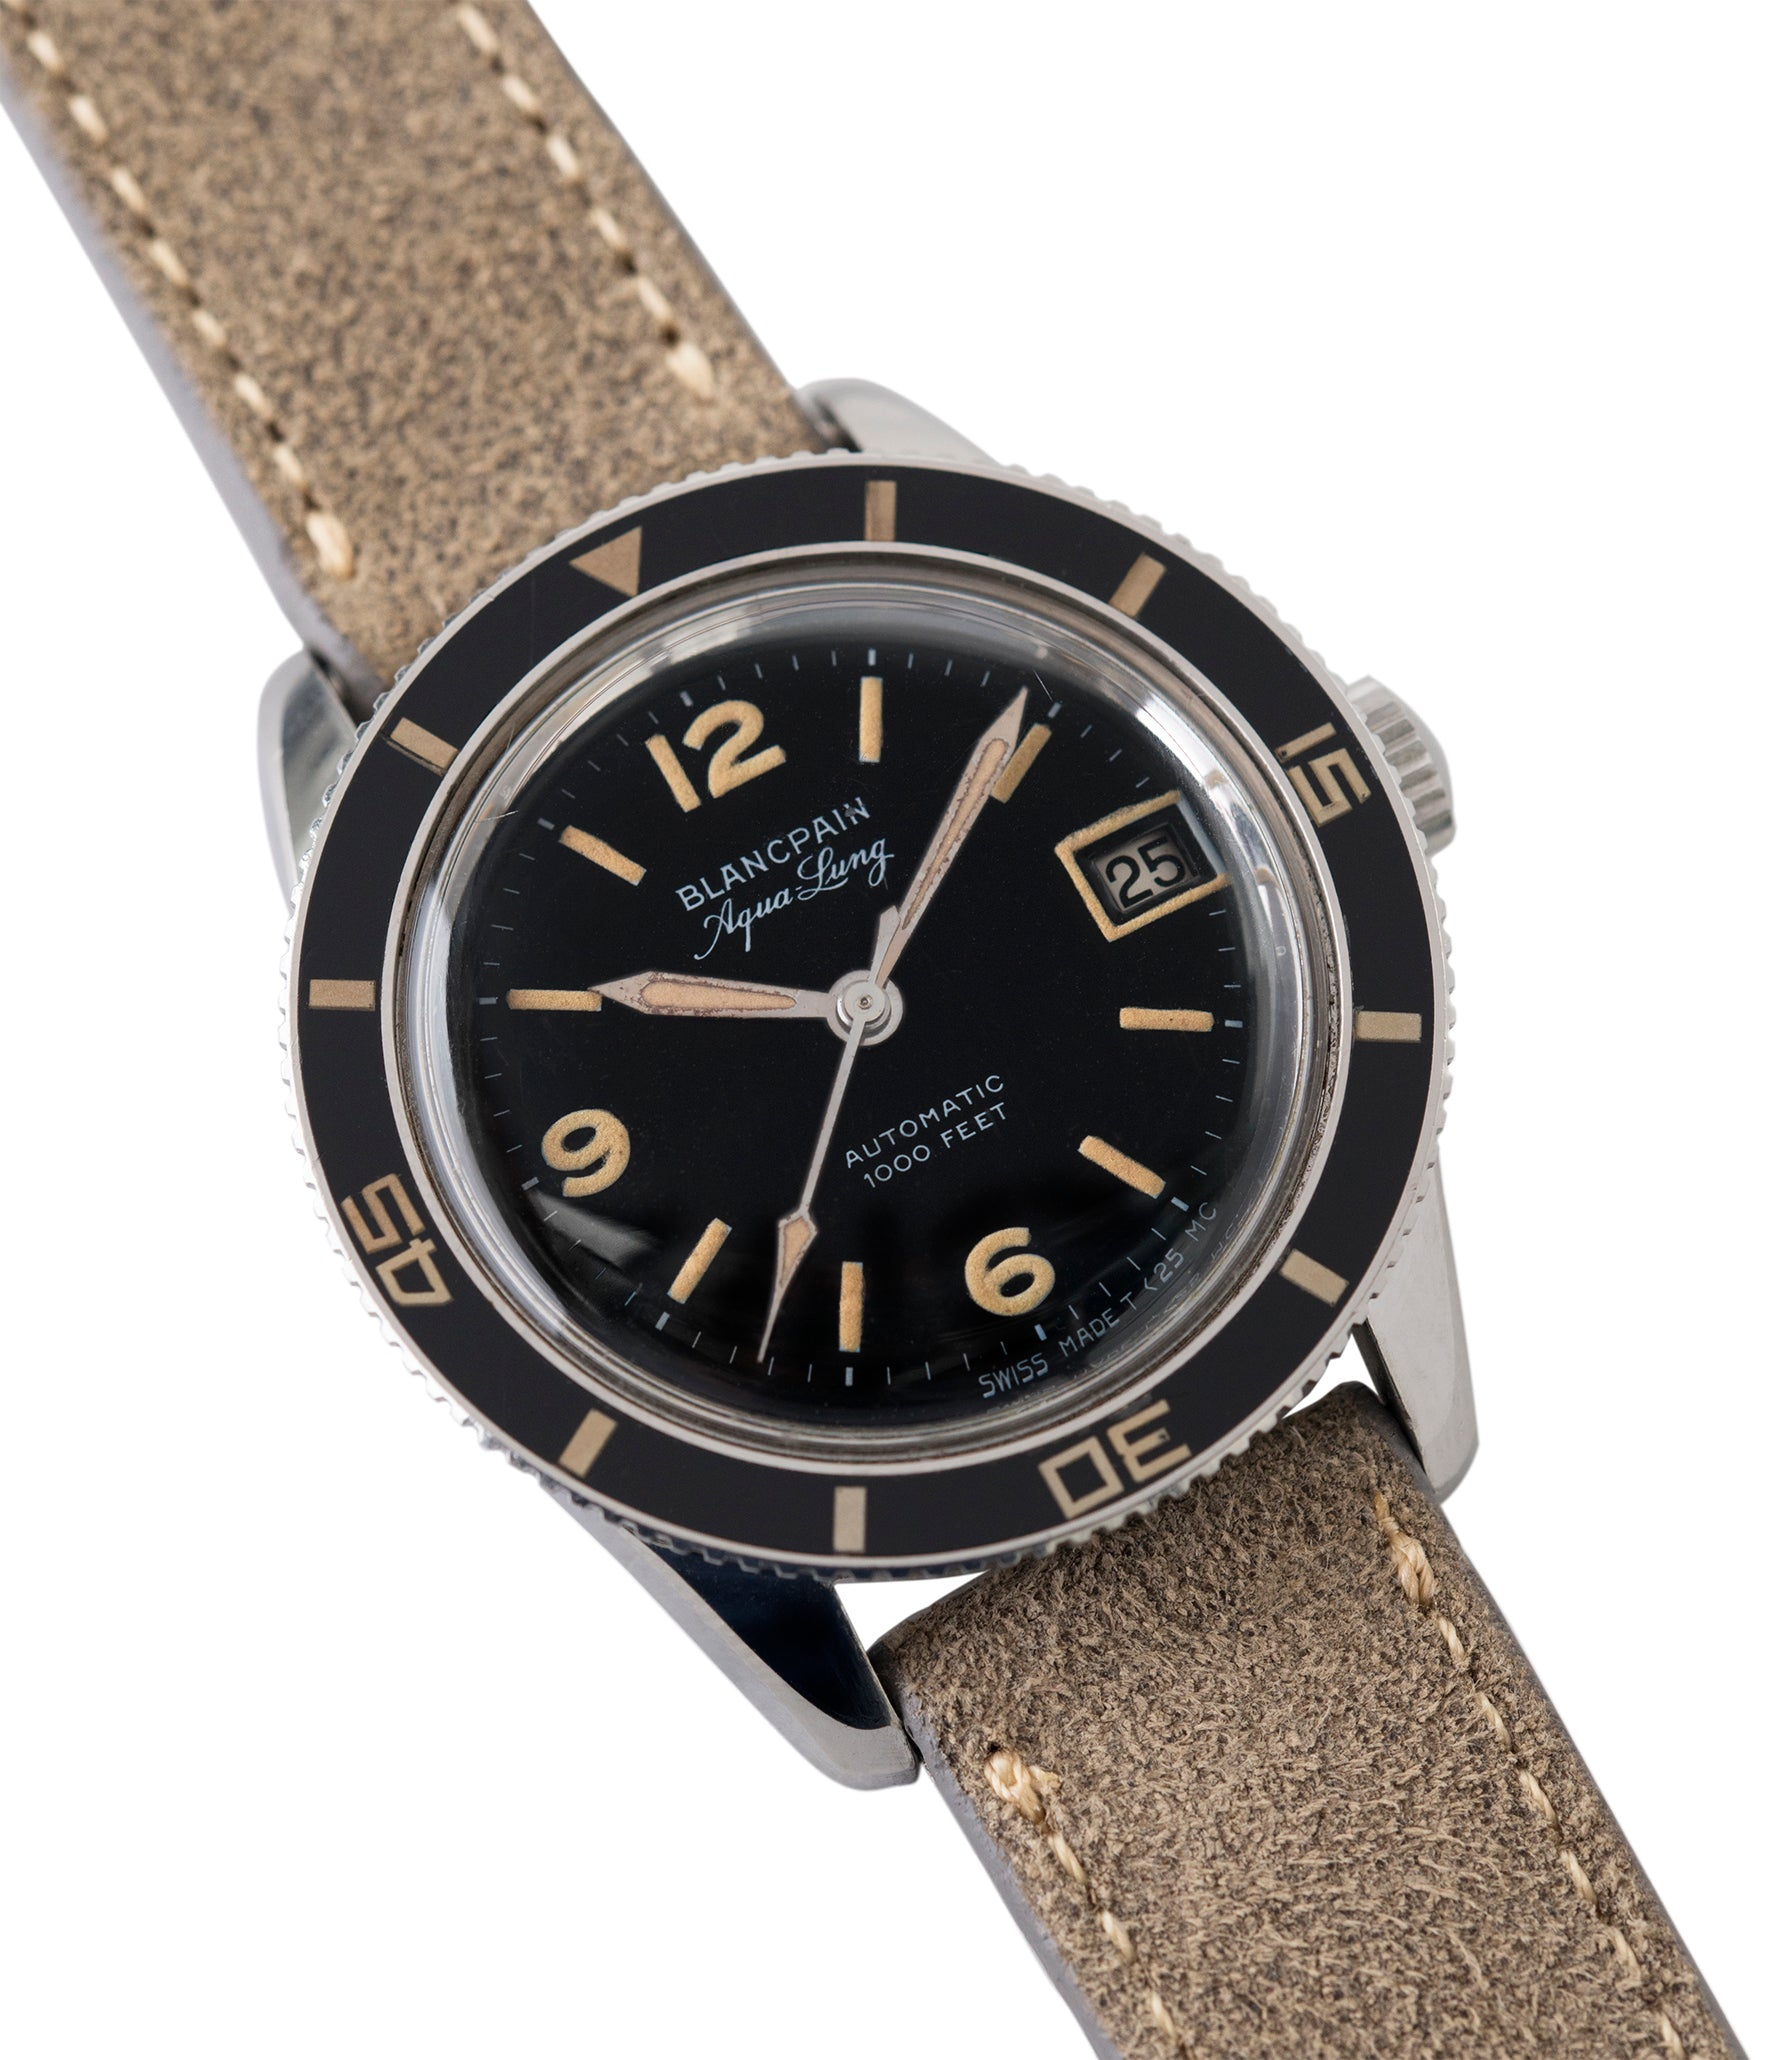 shop Blancpain Aqua Lung Gloss Dial Bakelite bezel Cal. AS 1700/01 vintage sport watch black dial for sale online at A Collected Man London UK specialist rare, vintage watches